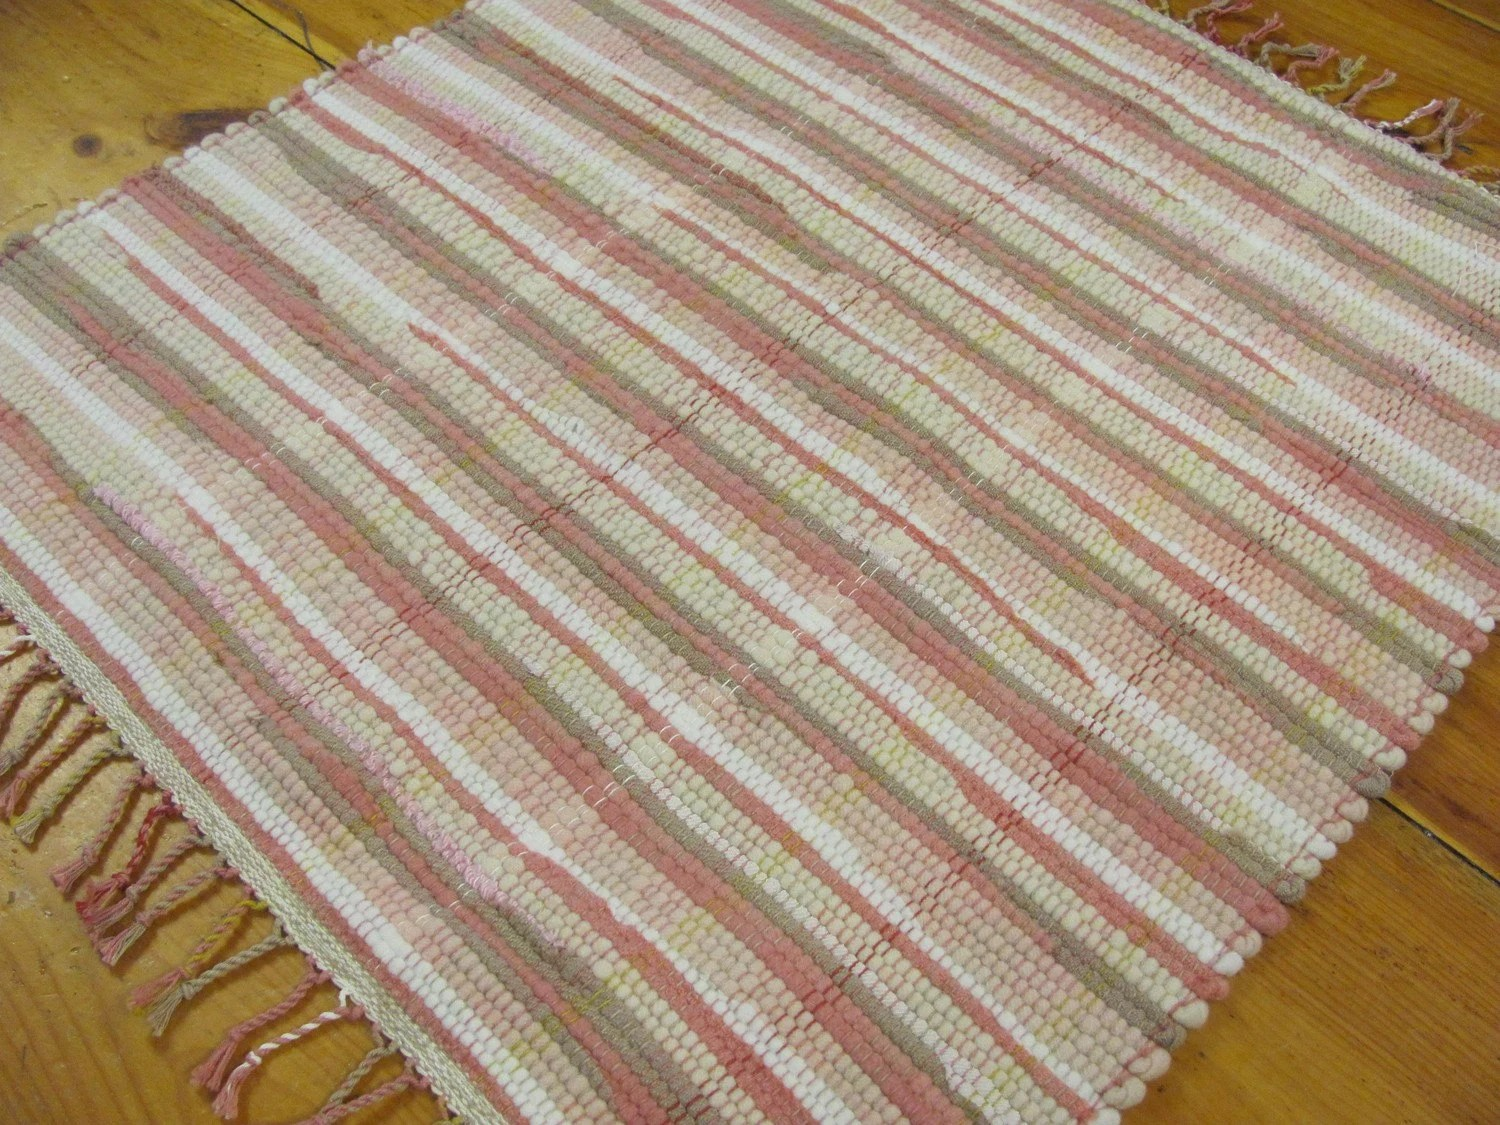 Rustic Farmhouse Area Rugs Rustic French Country Cottage Farmhouse Decor Wool Rag Rug